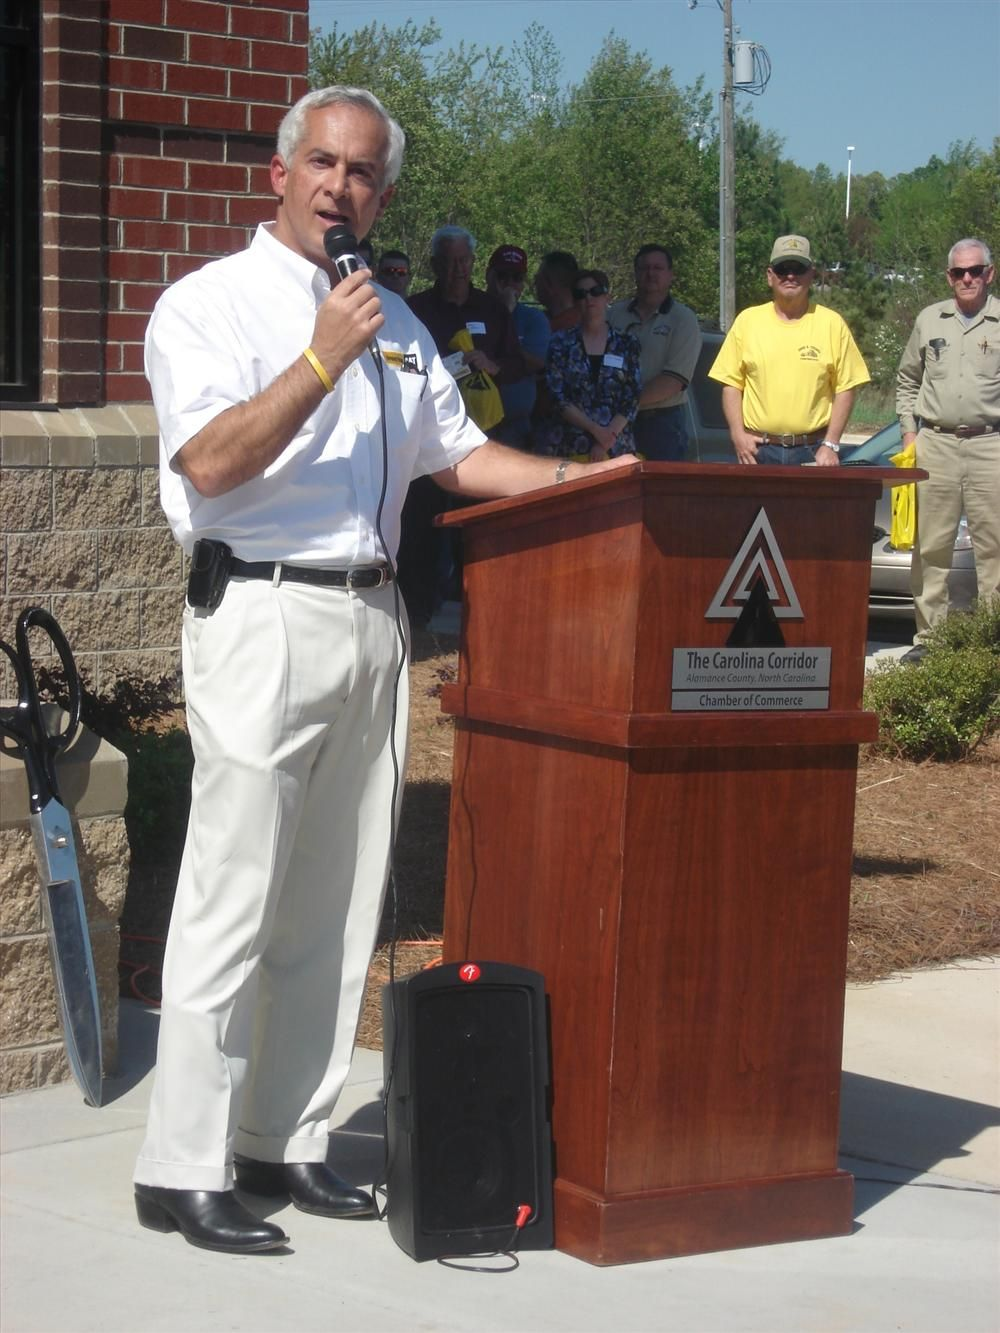 Greg Poole III, chairman and president of Gregory Poole Equipment Company, addressed 300 guests at the Mebane, N.C., facility's grand opening in 2009.